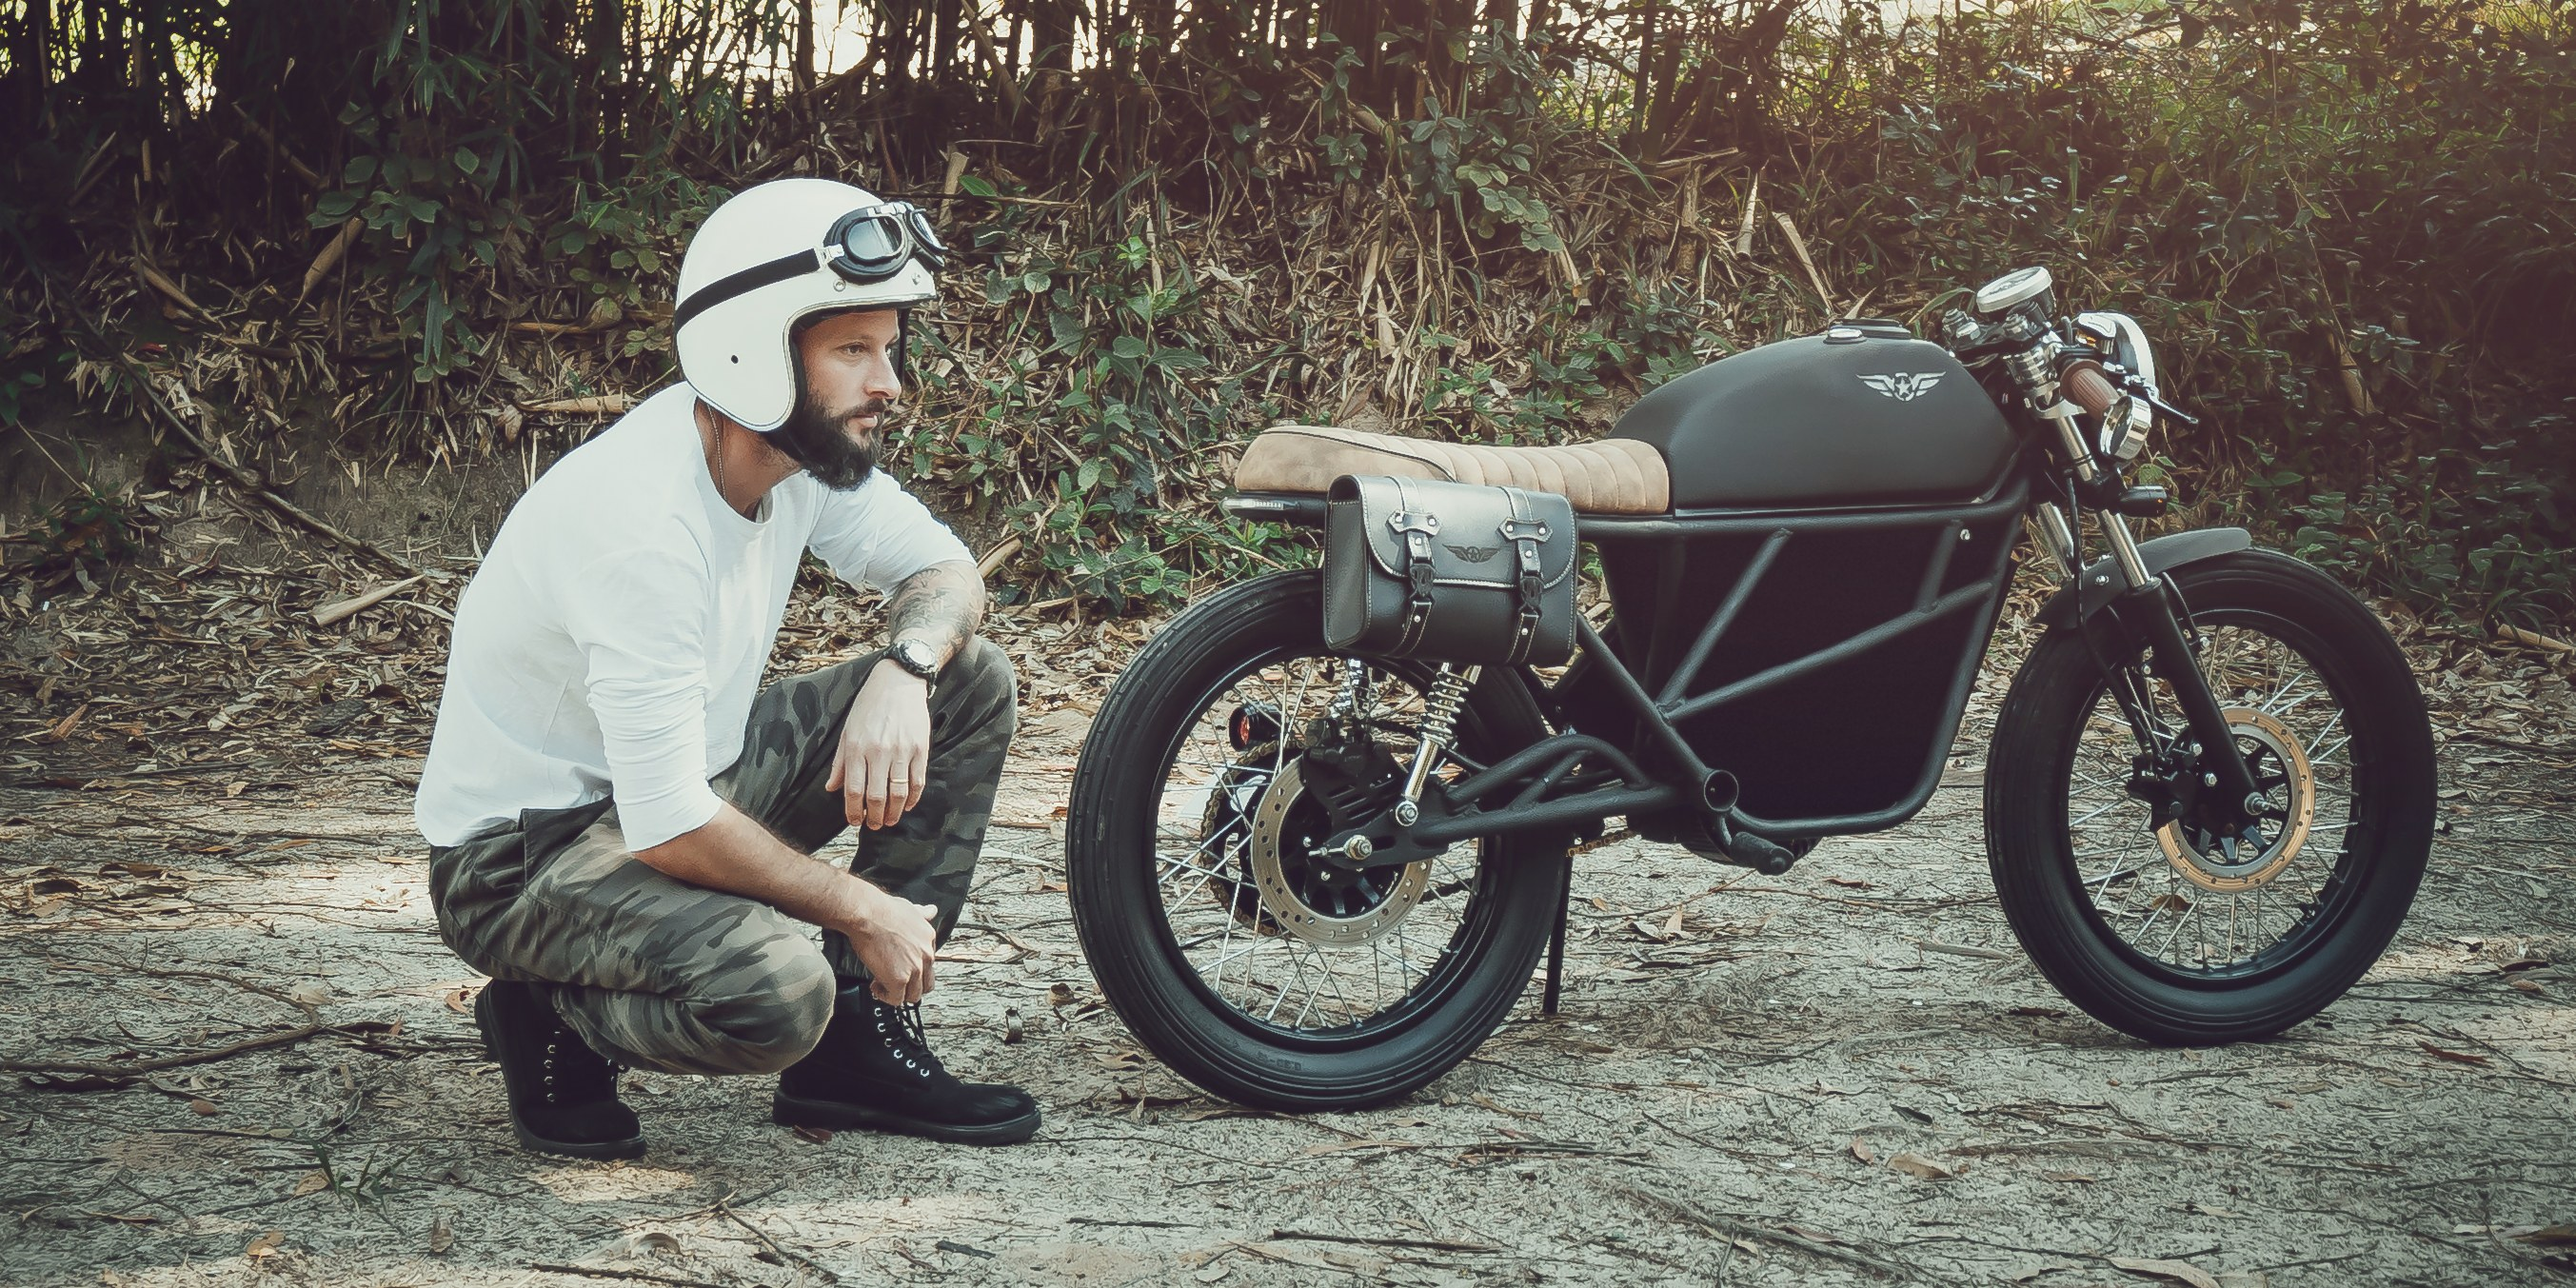 Fly Free's latest 50 mph electric motorcycle promises 100 mile range, ~$4,500 pre-sale price